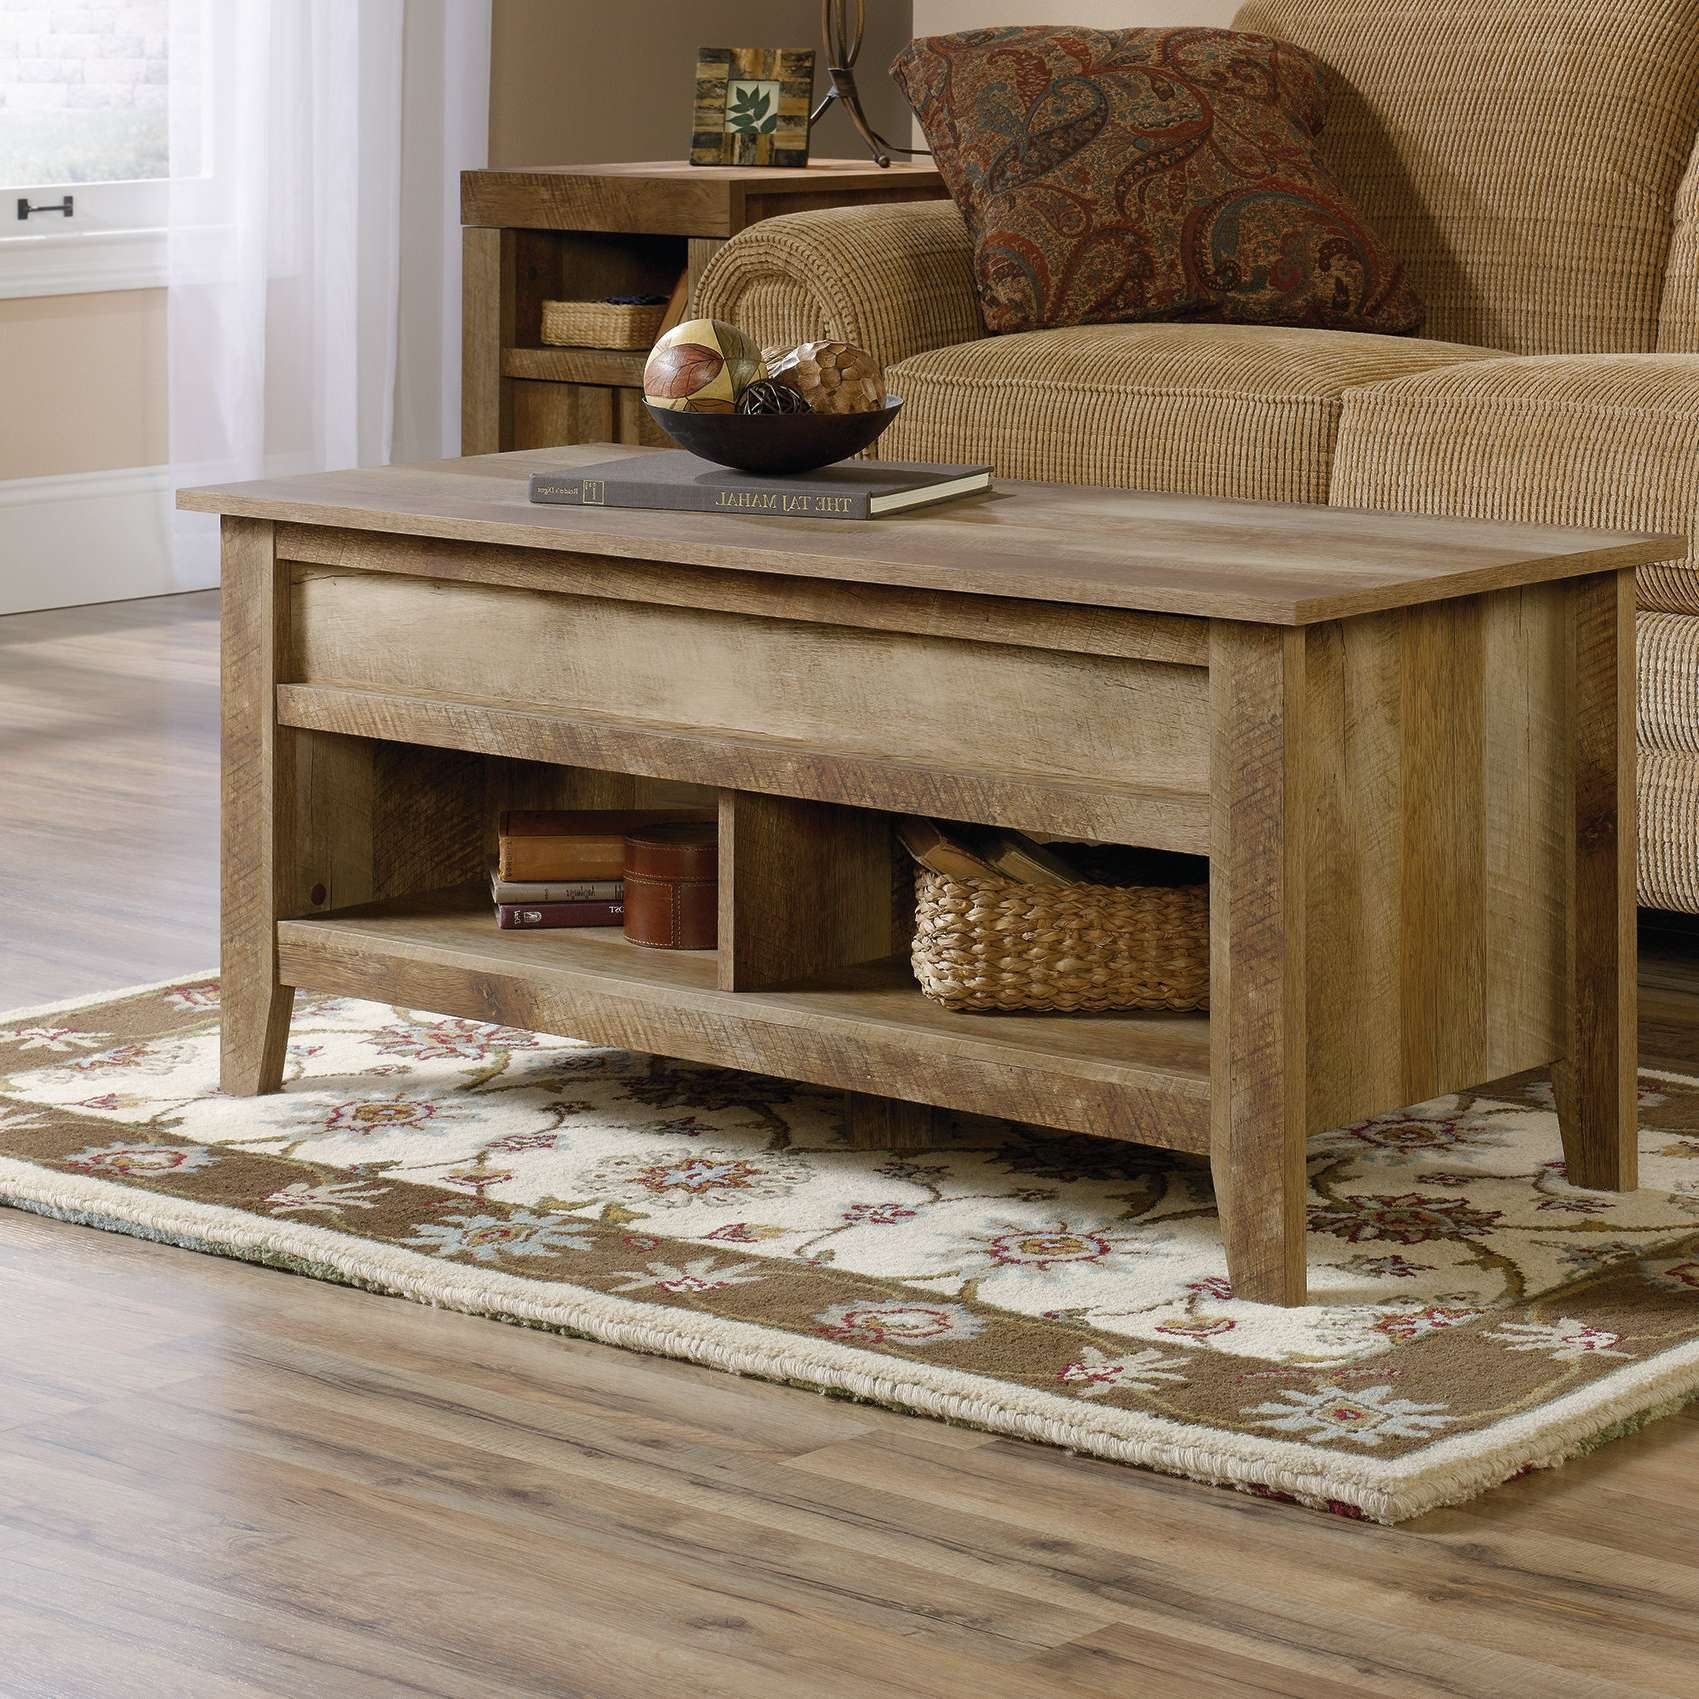 Lift Top Coffee Tables You'll Love (View 3 of 20)